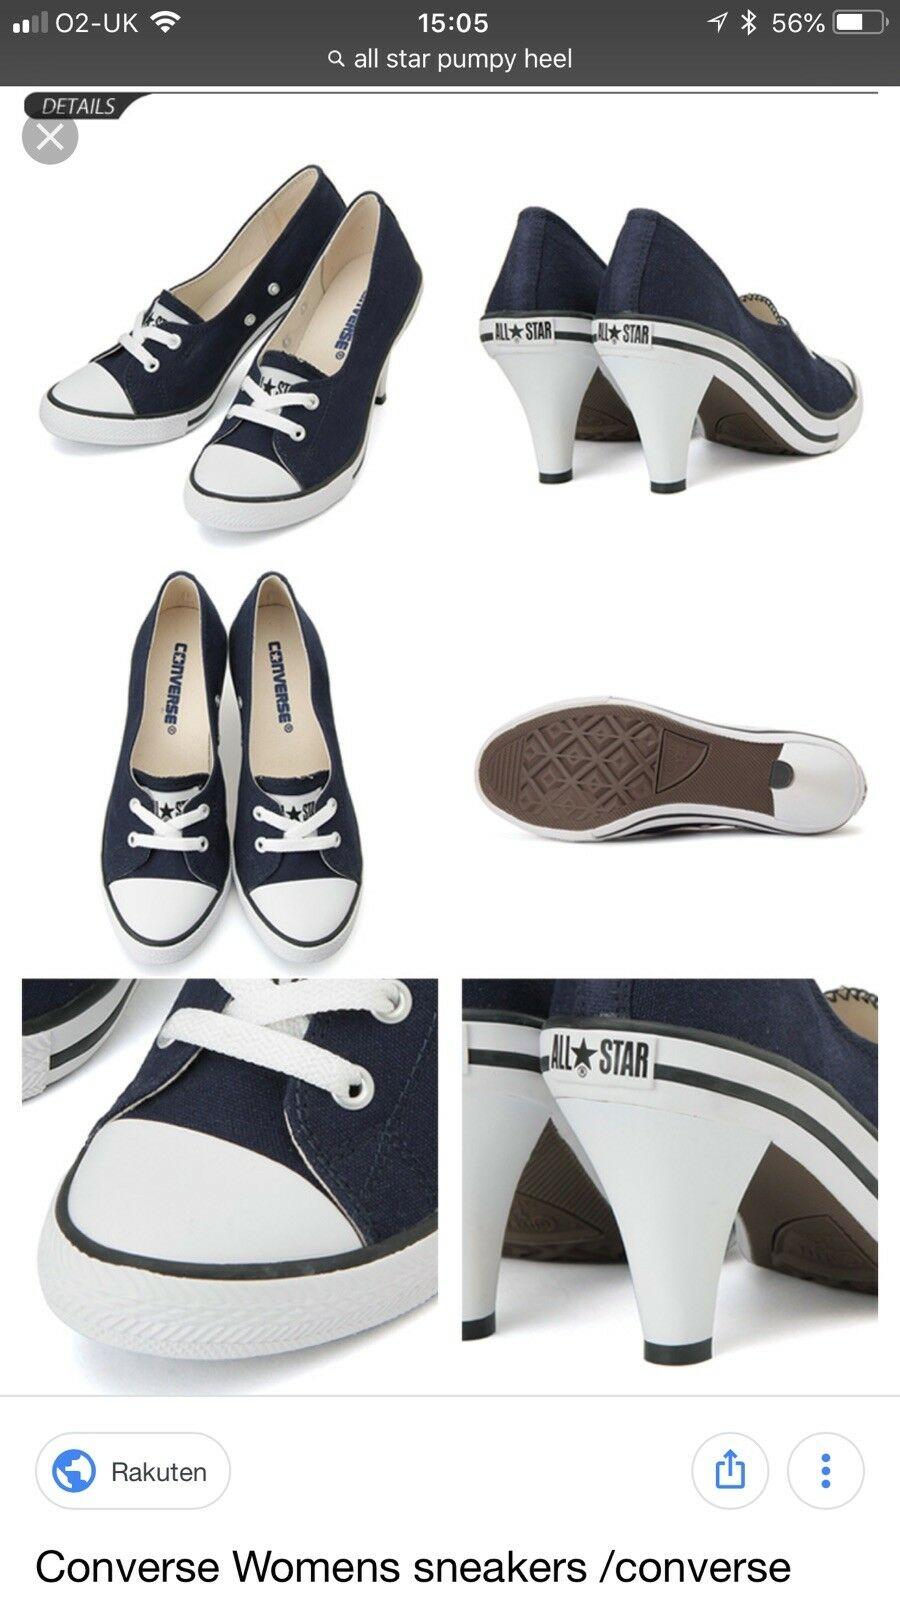 Converse All Star Pumpy Heel